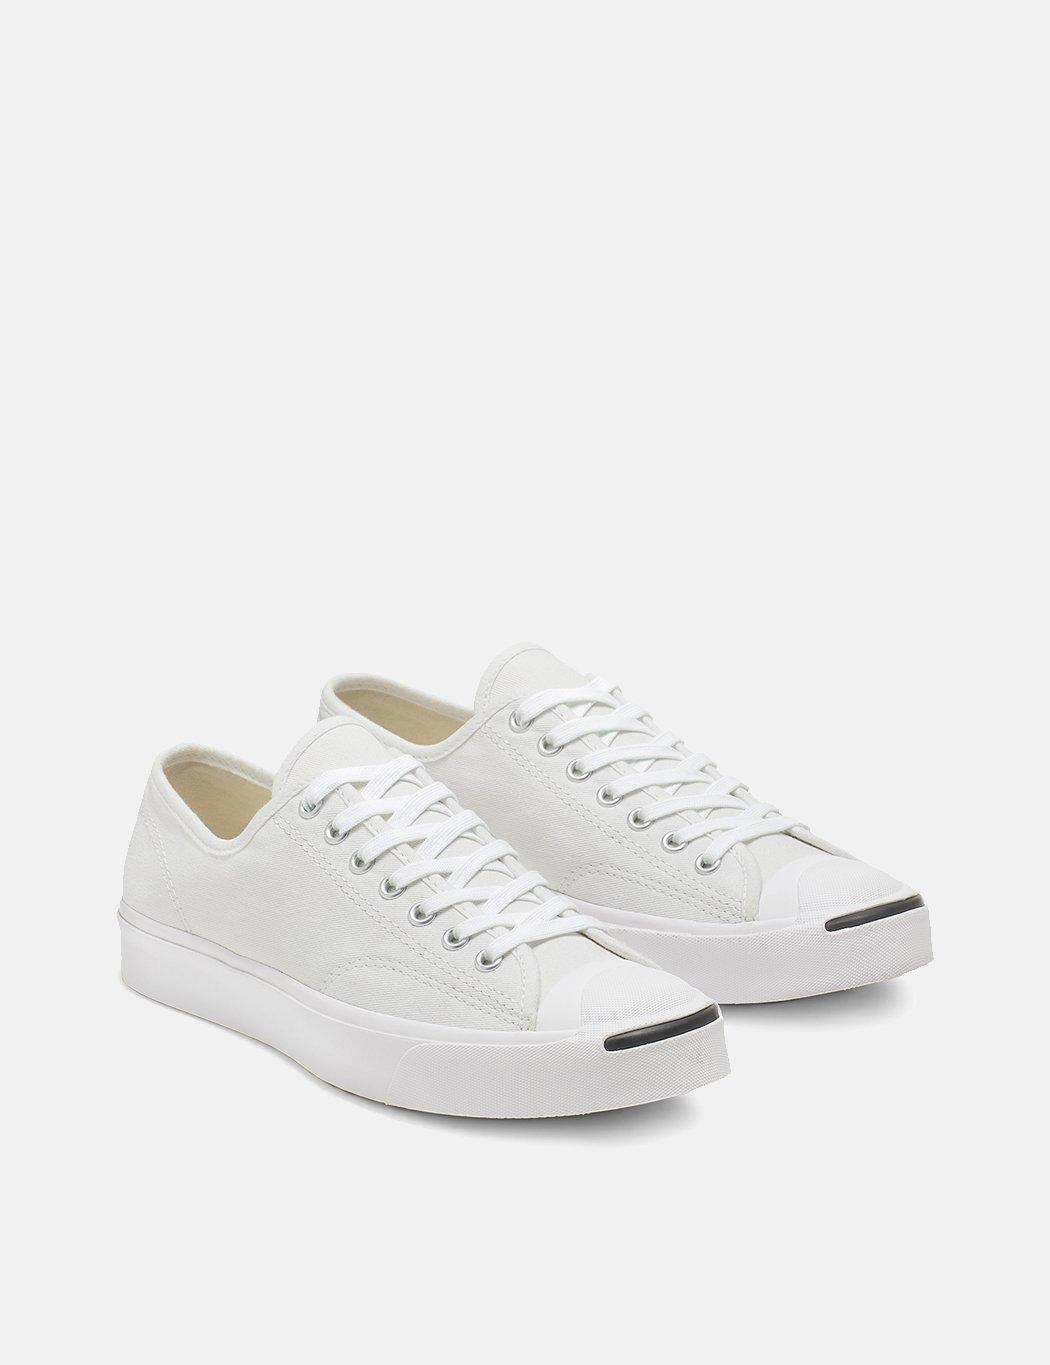 daffa9a419c1 Lyst - Converse Jack Purcell 164057c (canvas) in White for Men